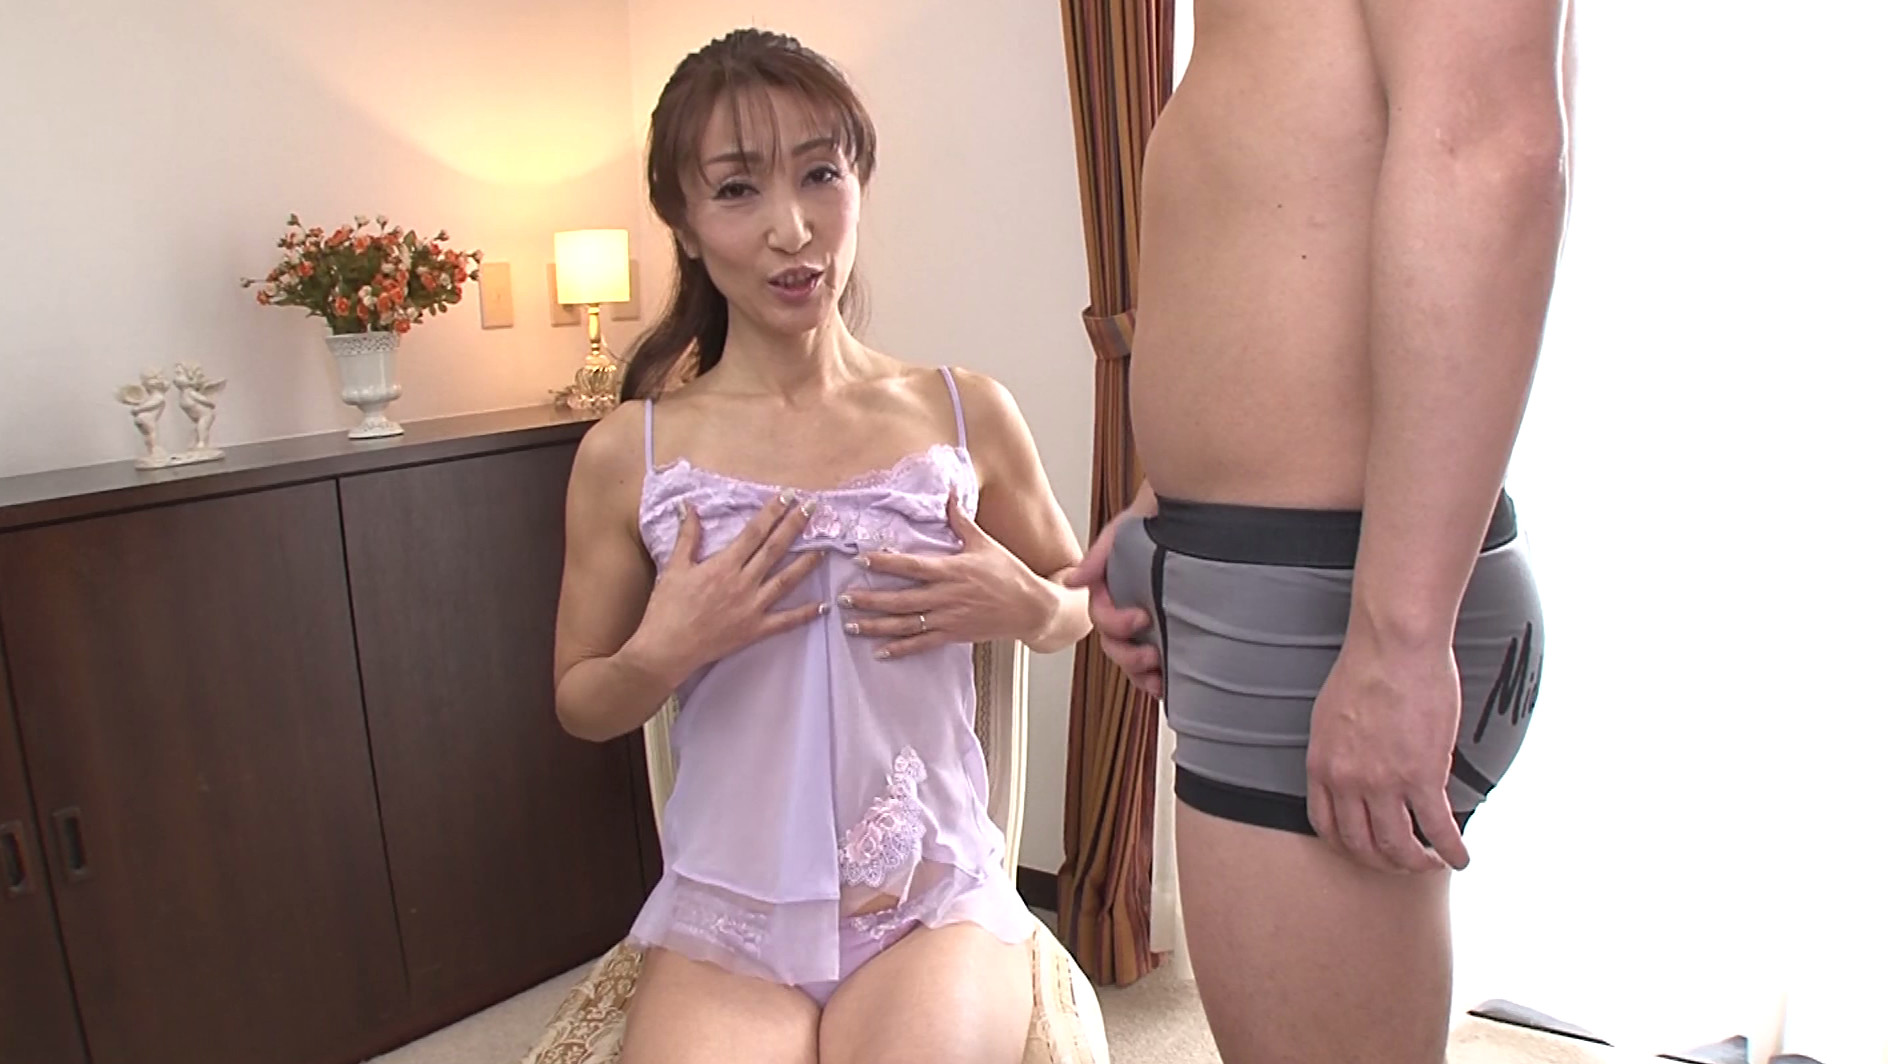 girlsdelta asian ass yoshino 3500 girlsdelta asian ass yoshino3500